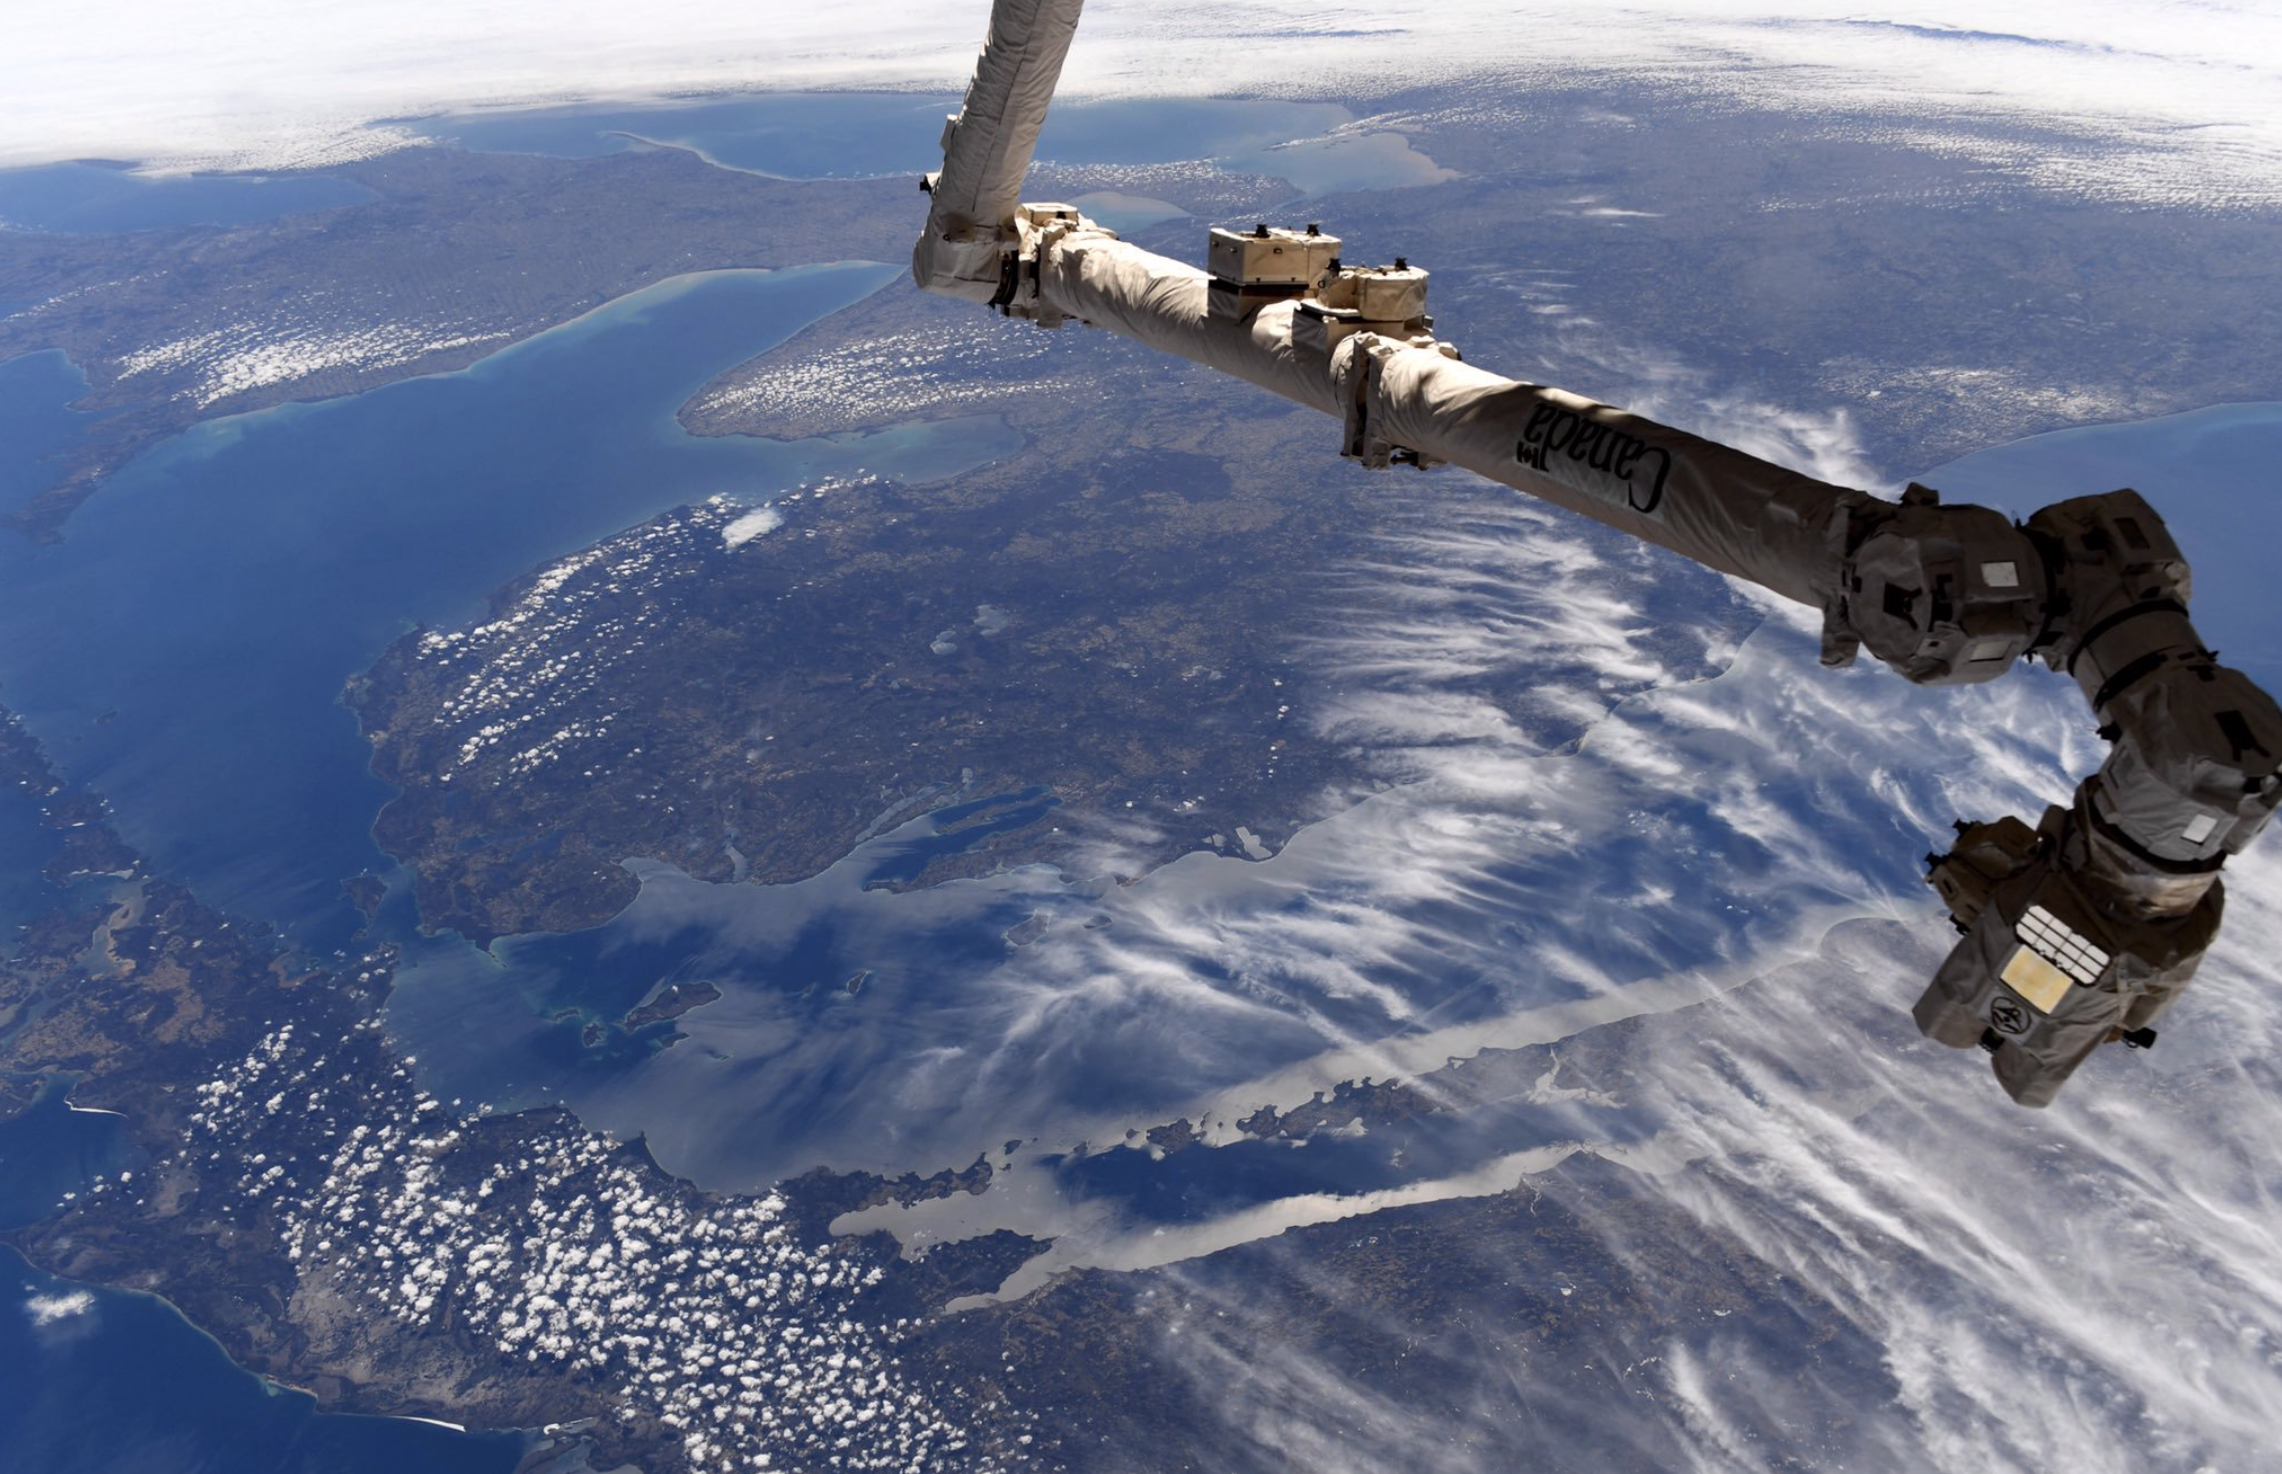 Here's what Michigan looks like from the International Space Station